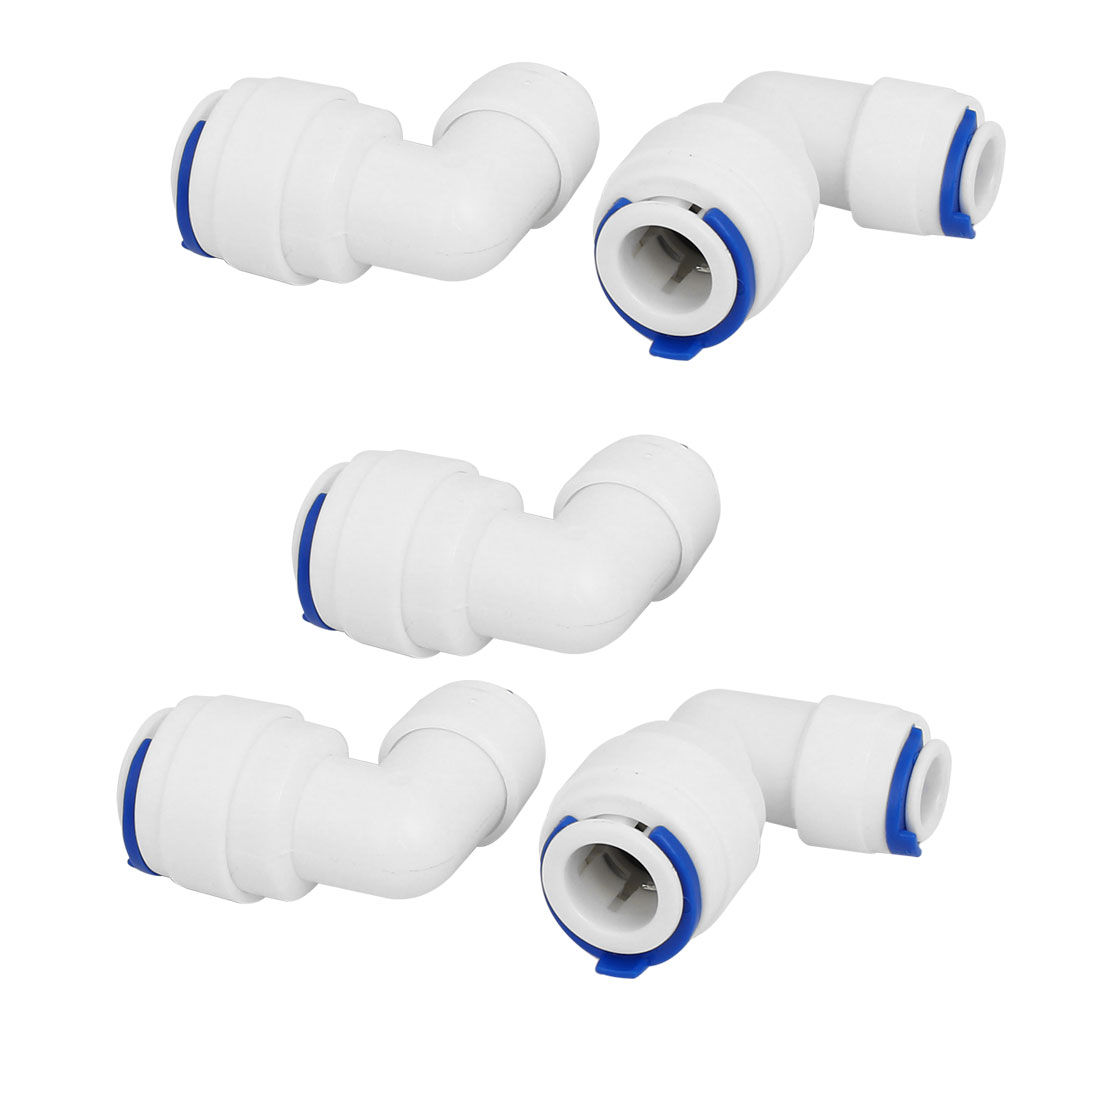 """1/4"""" x 3/8"""" Tube Elbow Push In Quick Connect 5pcs for RO Water Filter Fitting"""